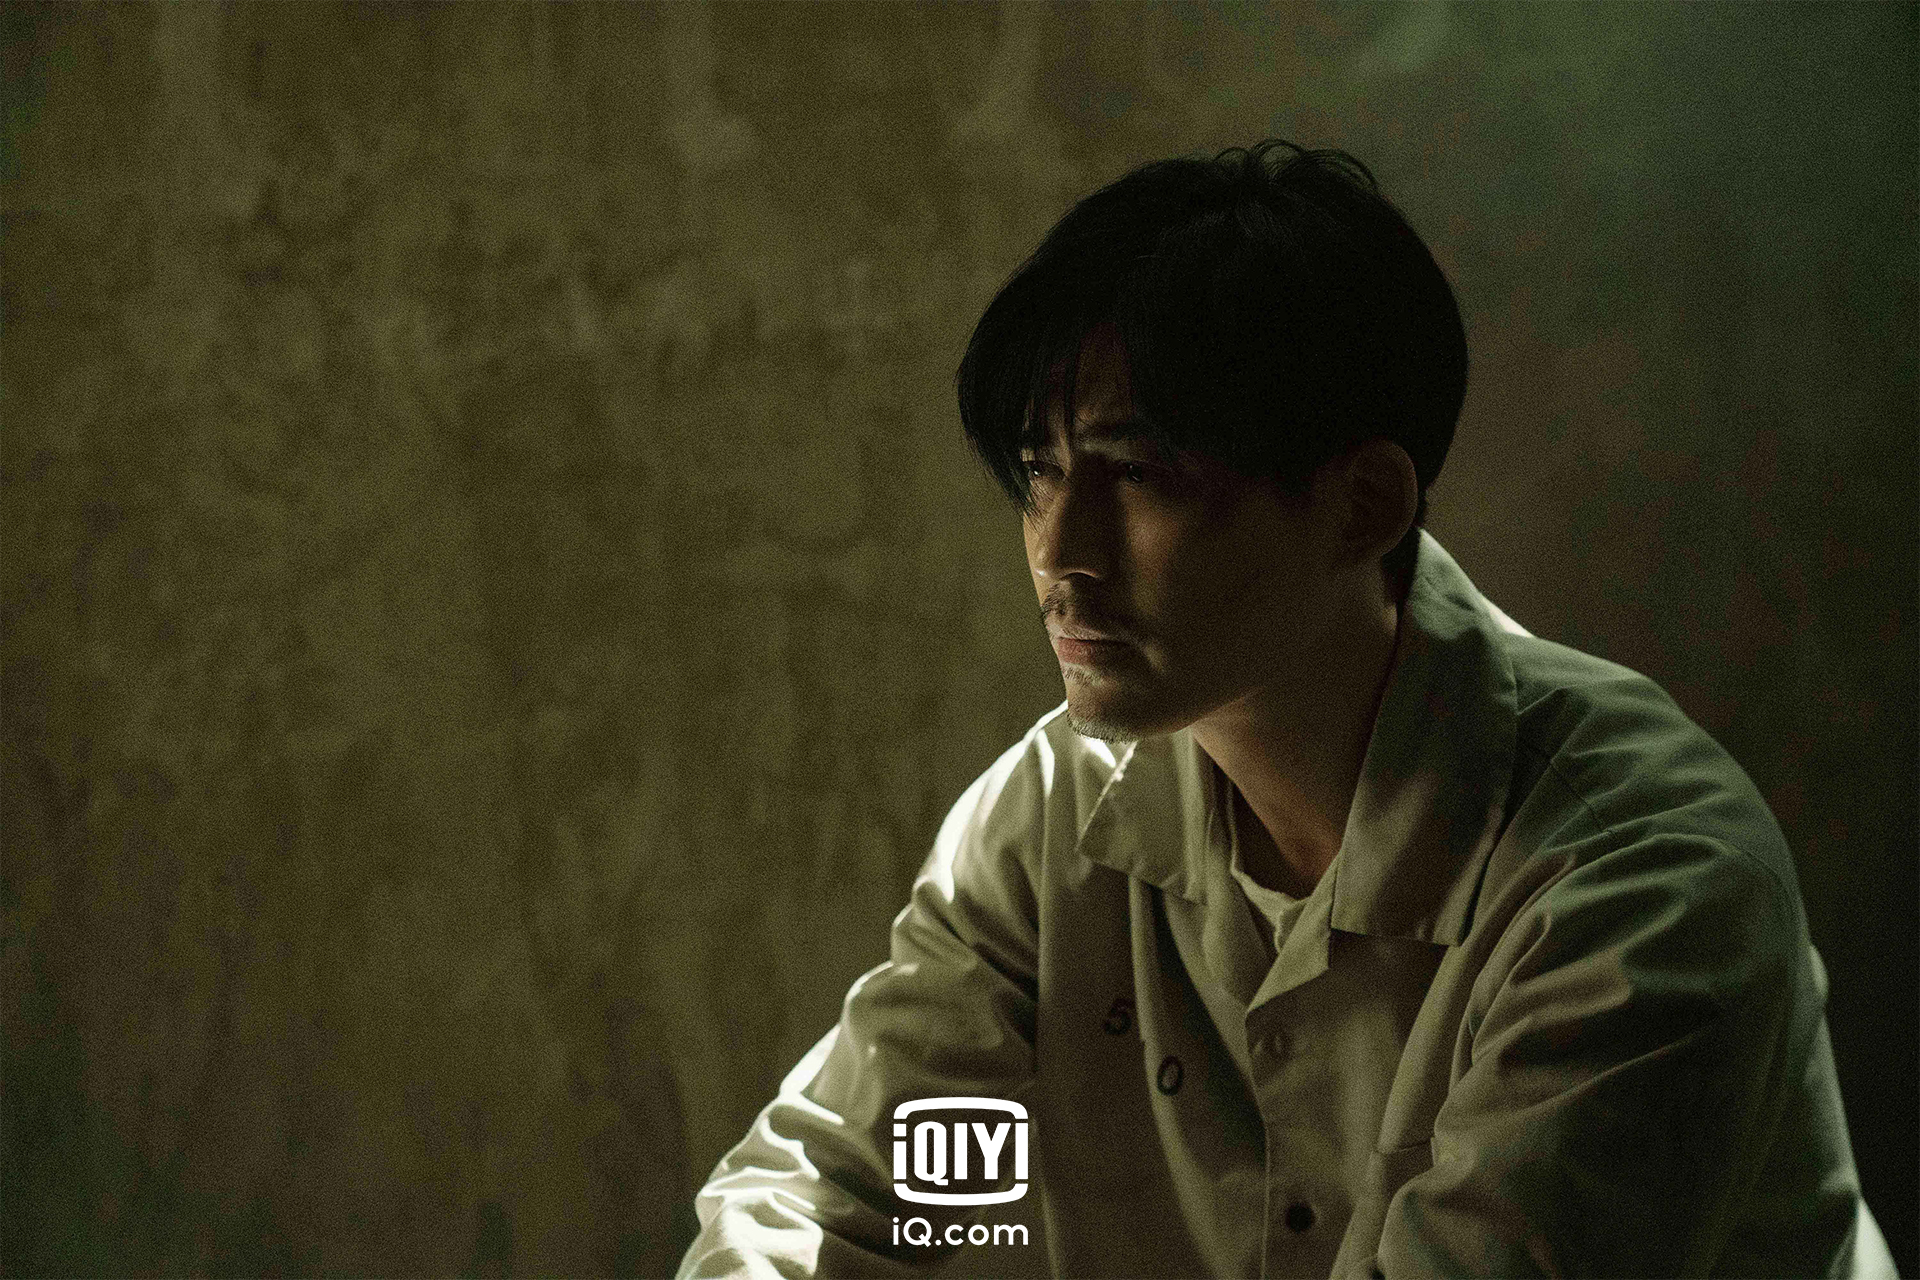 iQiyi's first prison-themed Chinese language original series 'Danger Zone' set for global premiere on 3 September